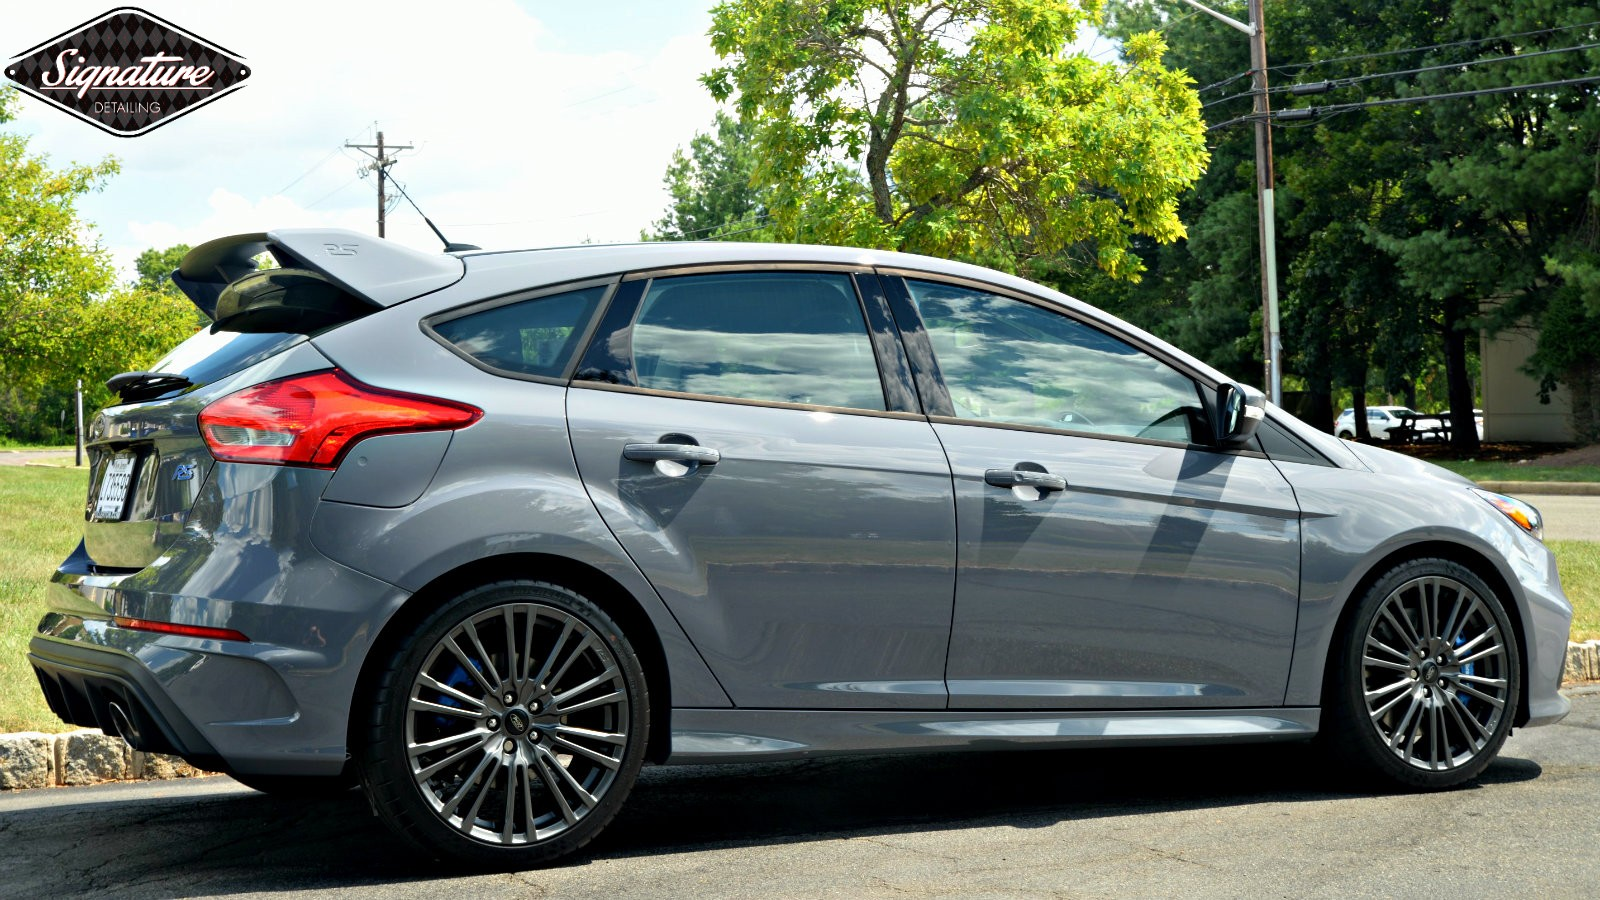 Ford Focus RS is blindingly bright after paint correction and Opti coat ceramic pro coating by signature detailing nj.